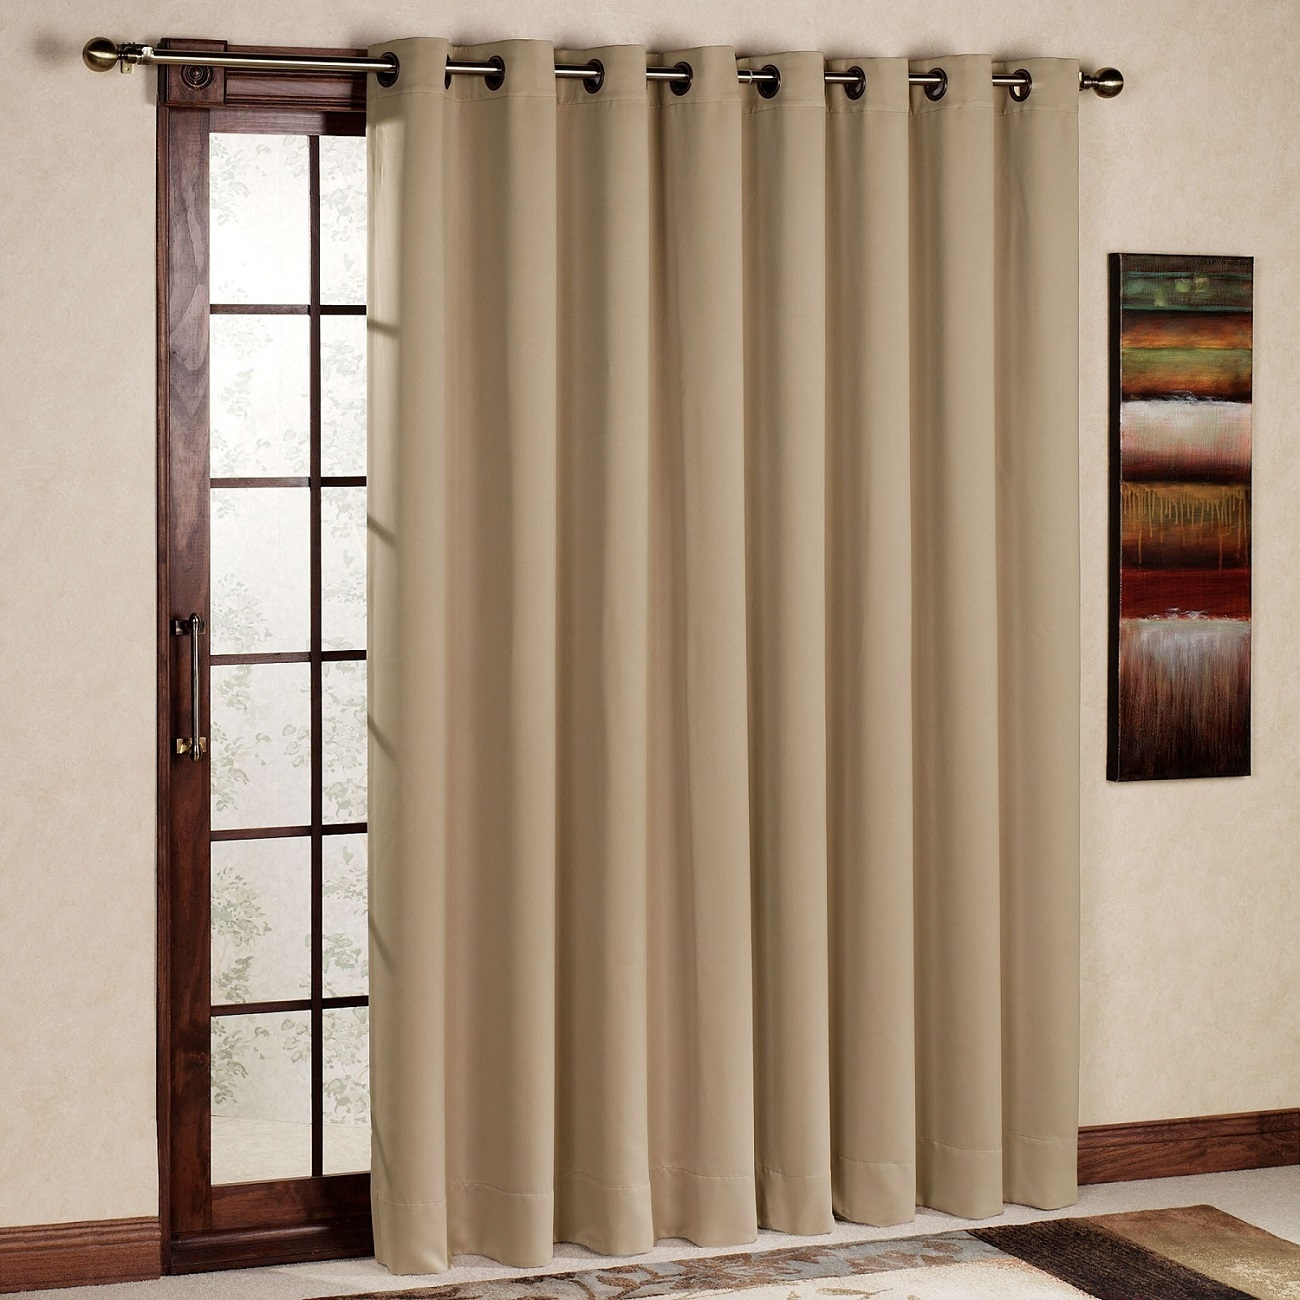 Sliding Door Curtains Bed Bath Beyondcurtain extraordinary curtains for sliding doors patio panels for